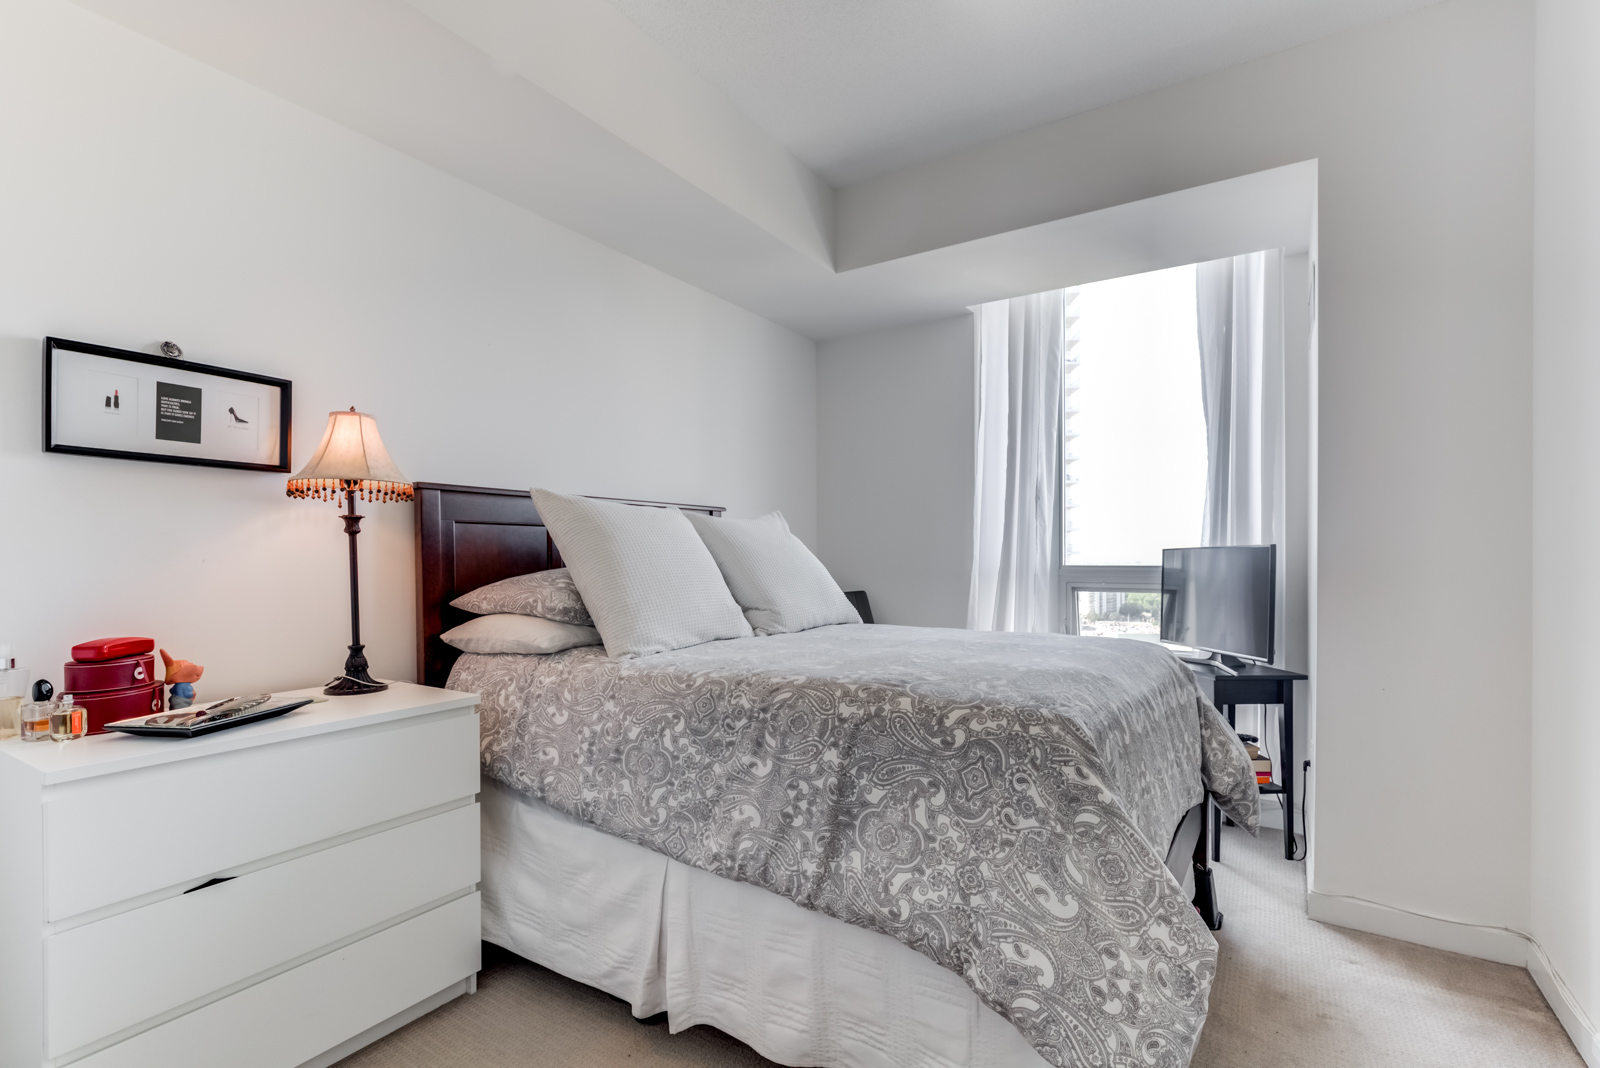 Second bedroom at 62 Forest Manor Rd Unit 1803, Toronto with large bed, gray walls, bedside table and lamp.